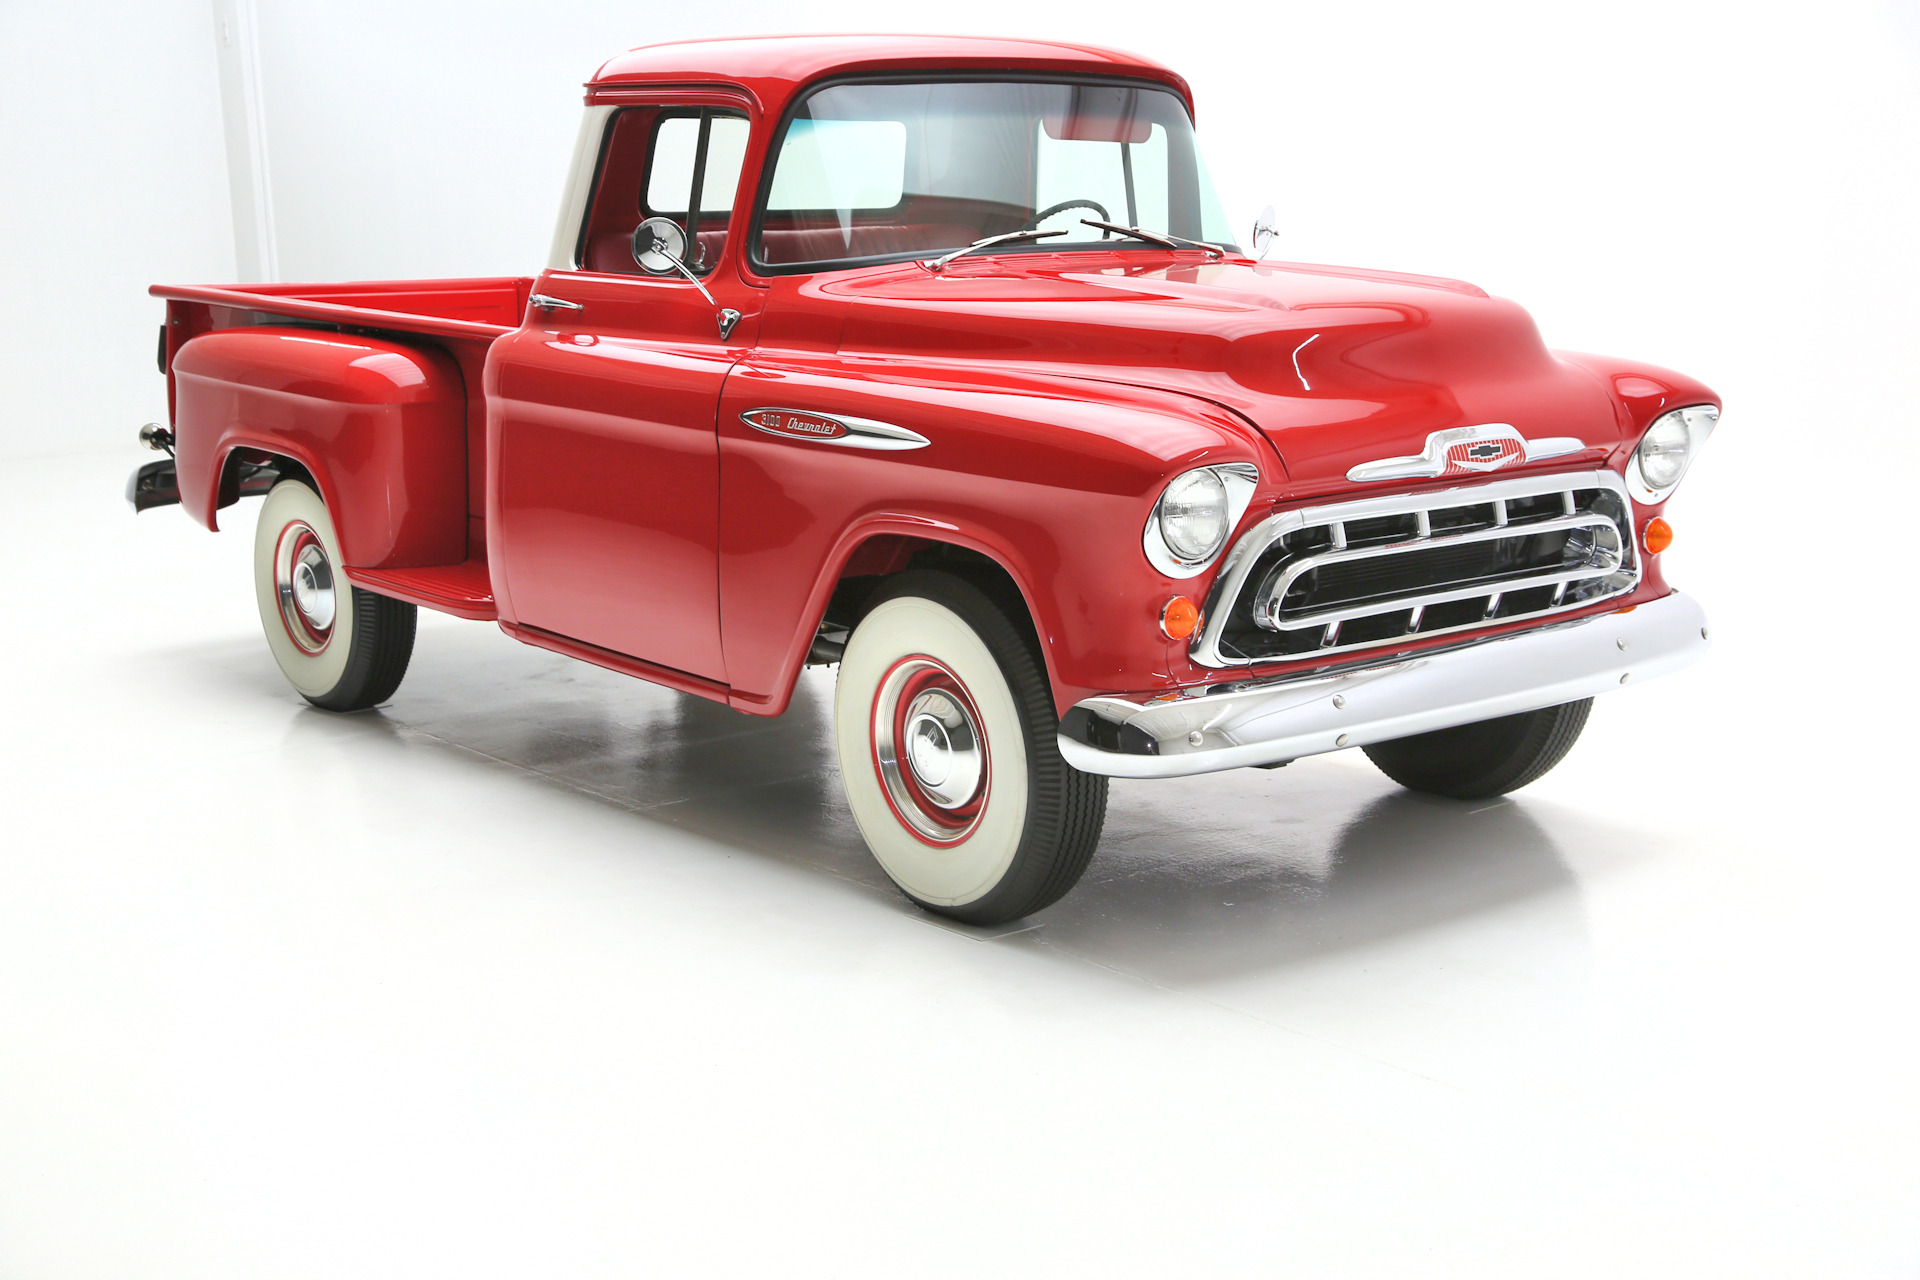 hight resolution of watch video watch video for sale used 1957 chevrolet pickup awesome truck american dream machines des moines ia 50309